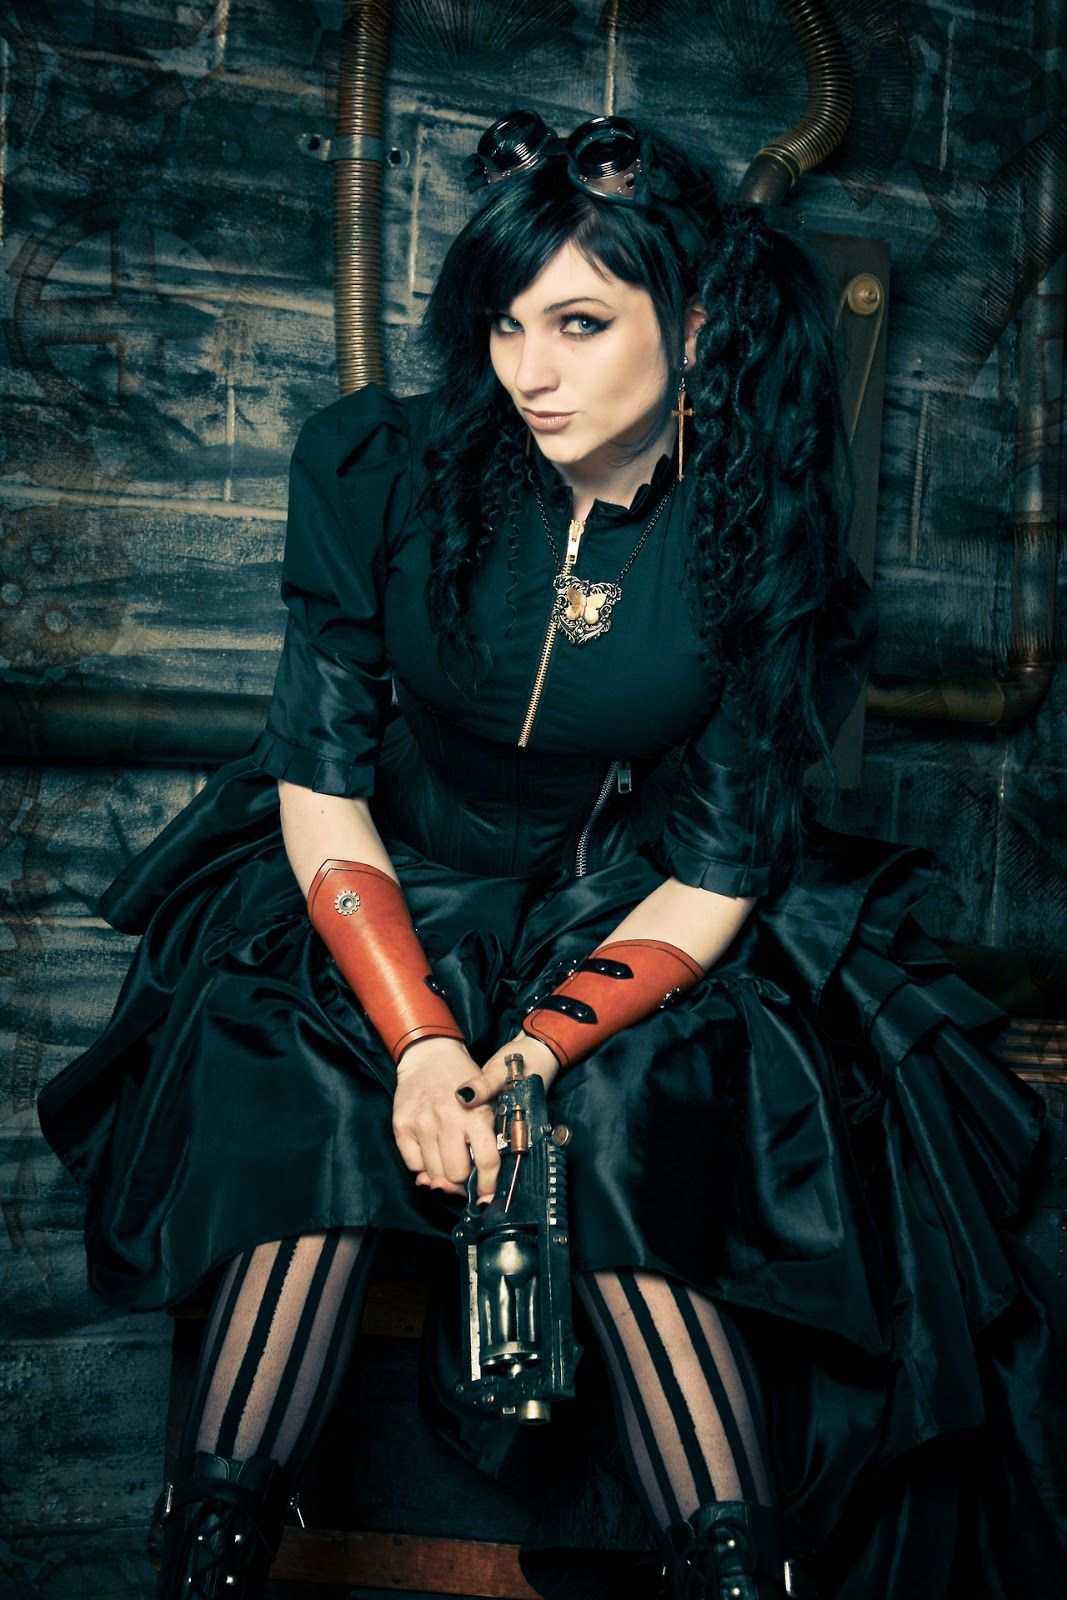 [Image: Steampunk+Girls+with+Guns+(57).jpg]